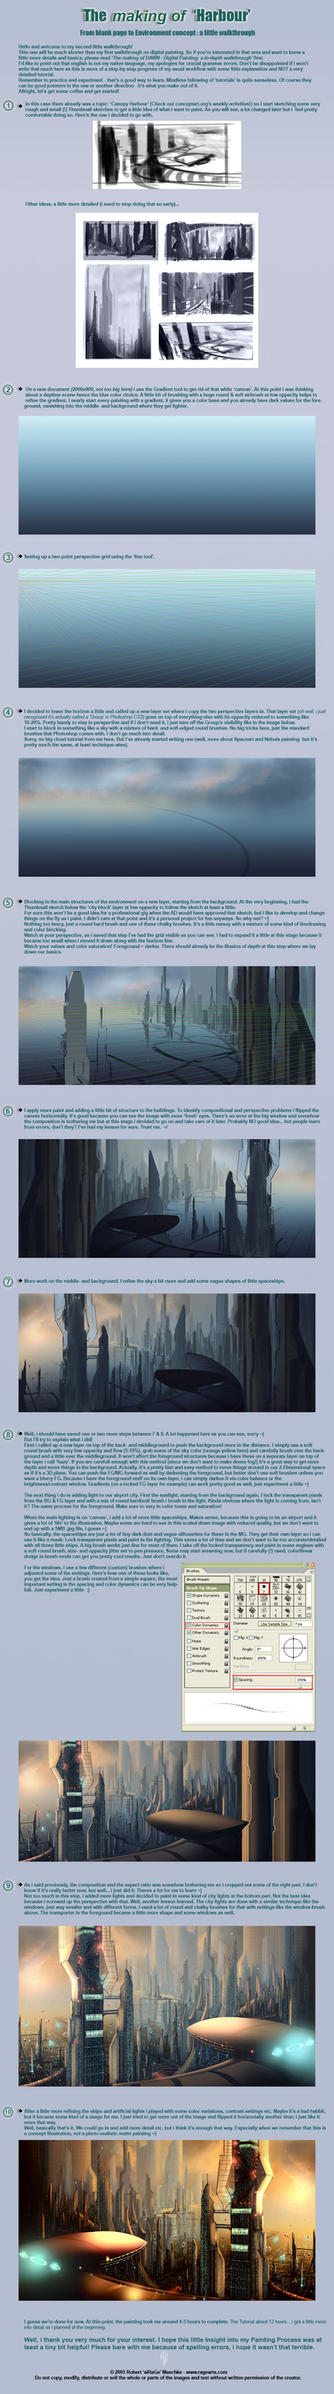 Inside Environment Painting 2 by aiRaGe